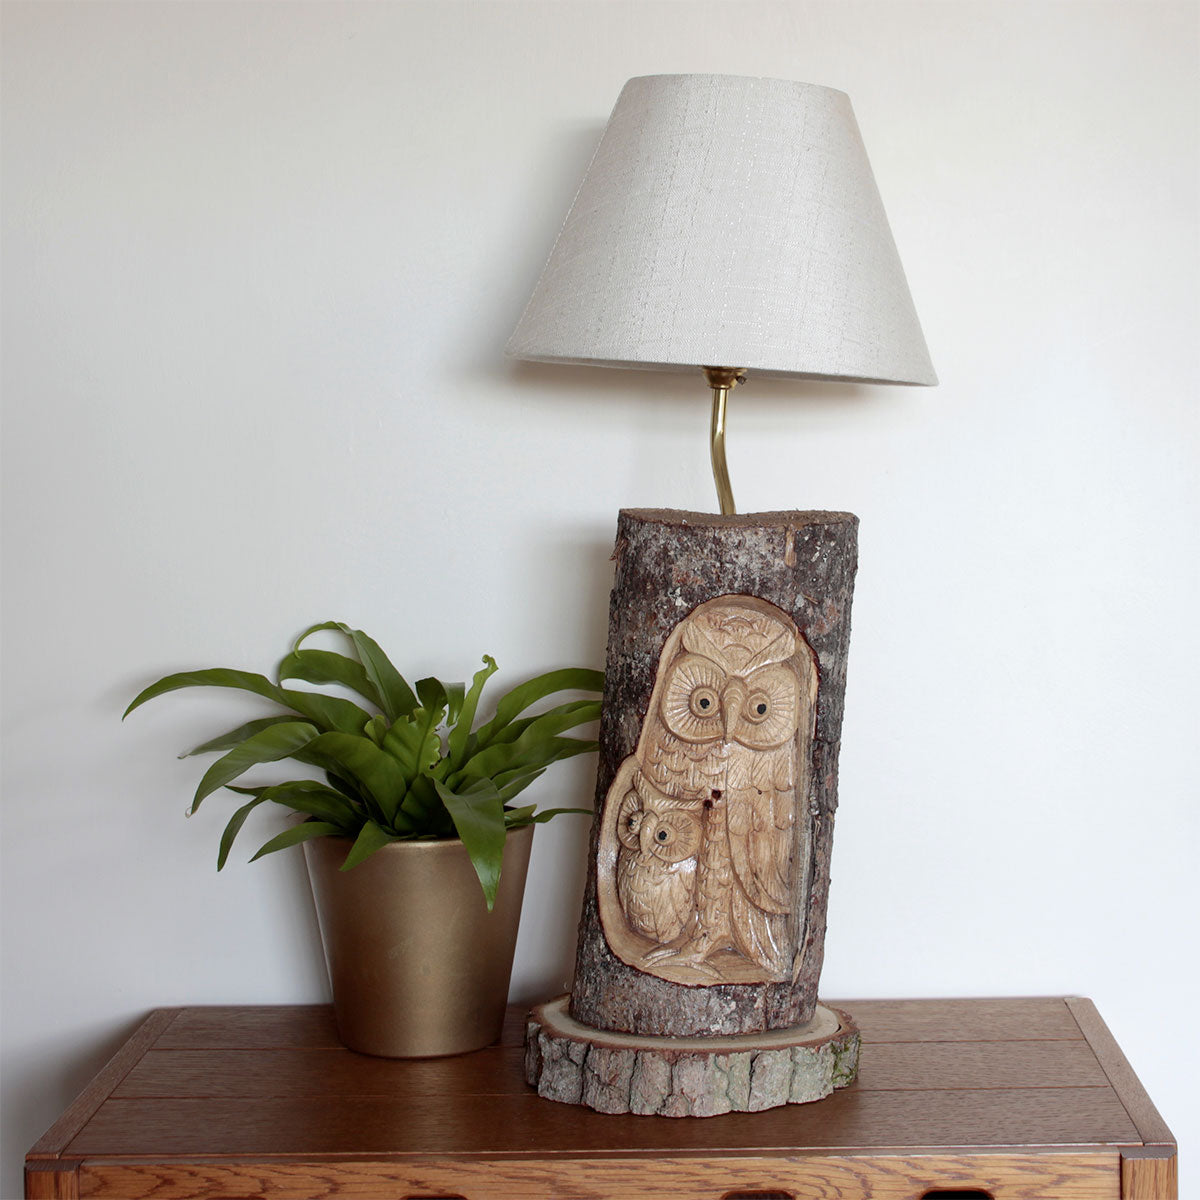 Carved log owl design indoor table lamp p n crafts hand carved log owl table lamp beautifully hand crafted sculpture with amazing detail aloadofball Image collections